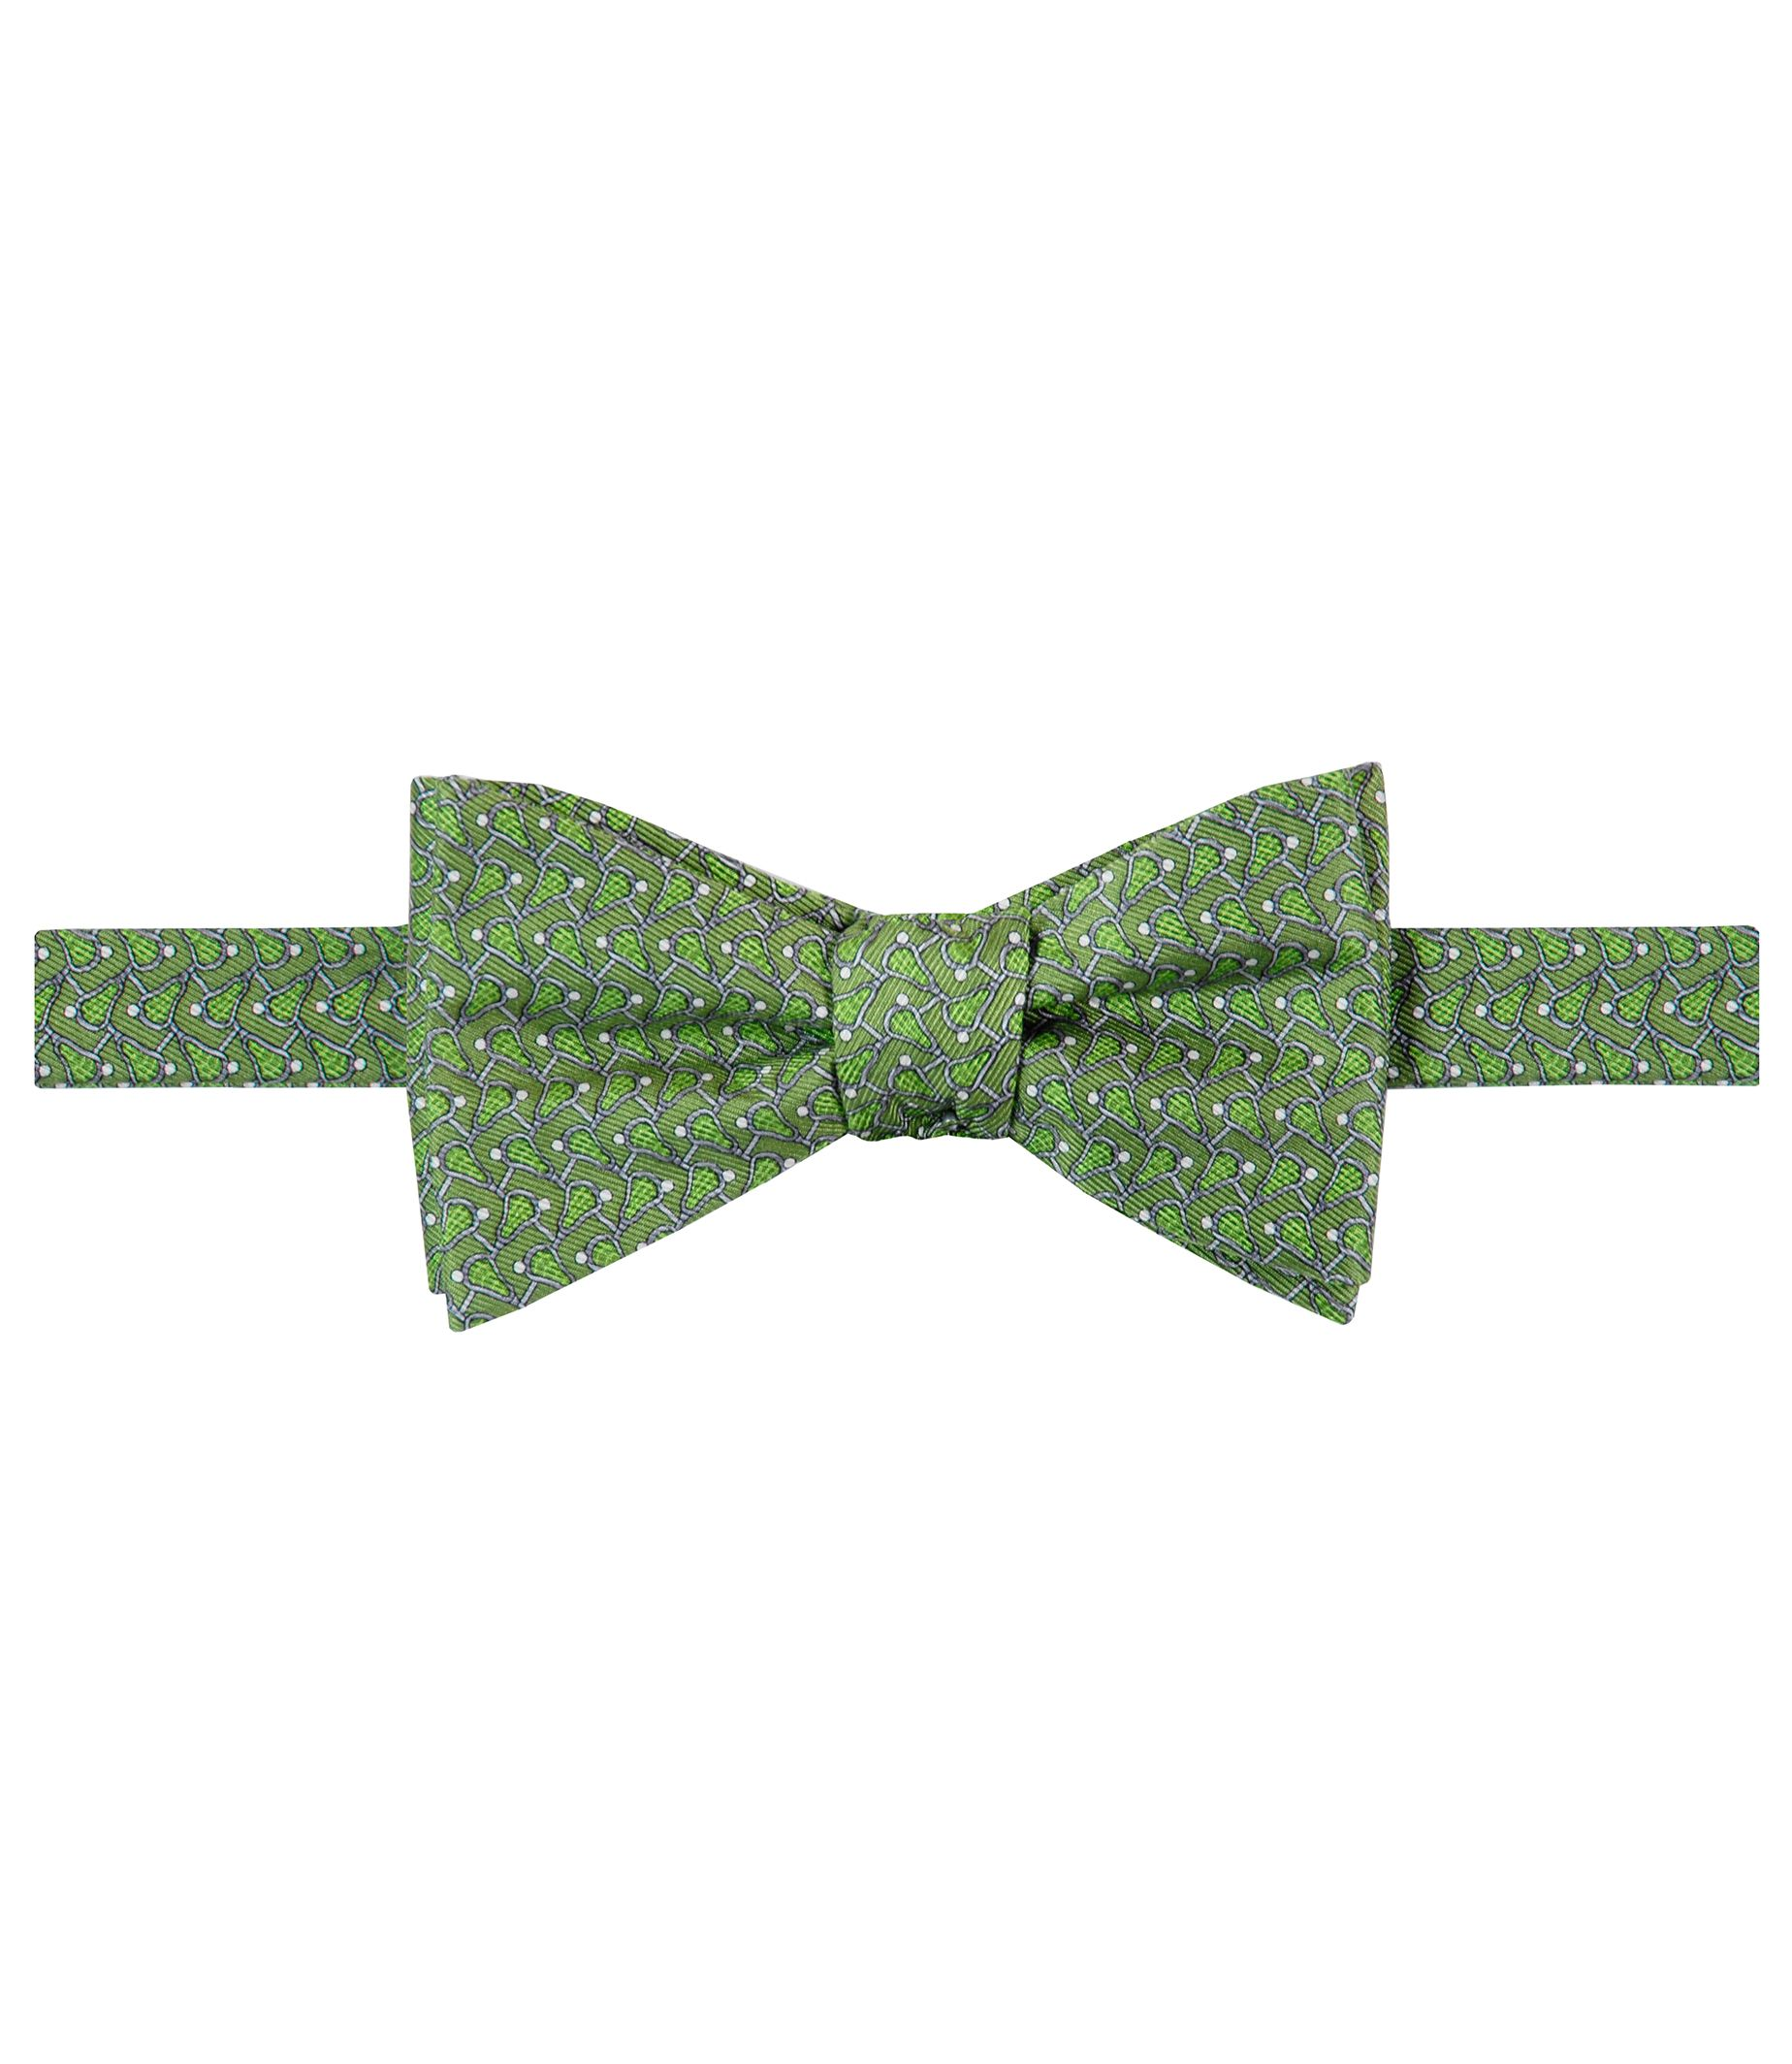 Executive Lacrosse Sticks Bowtie